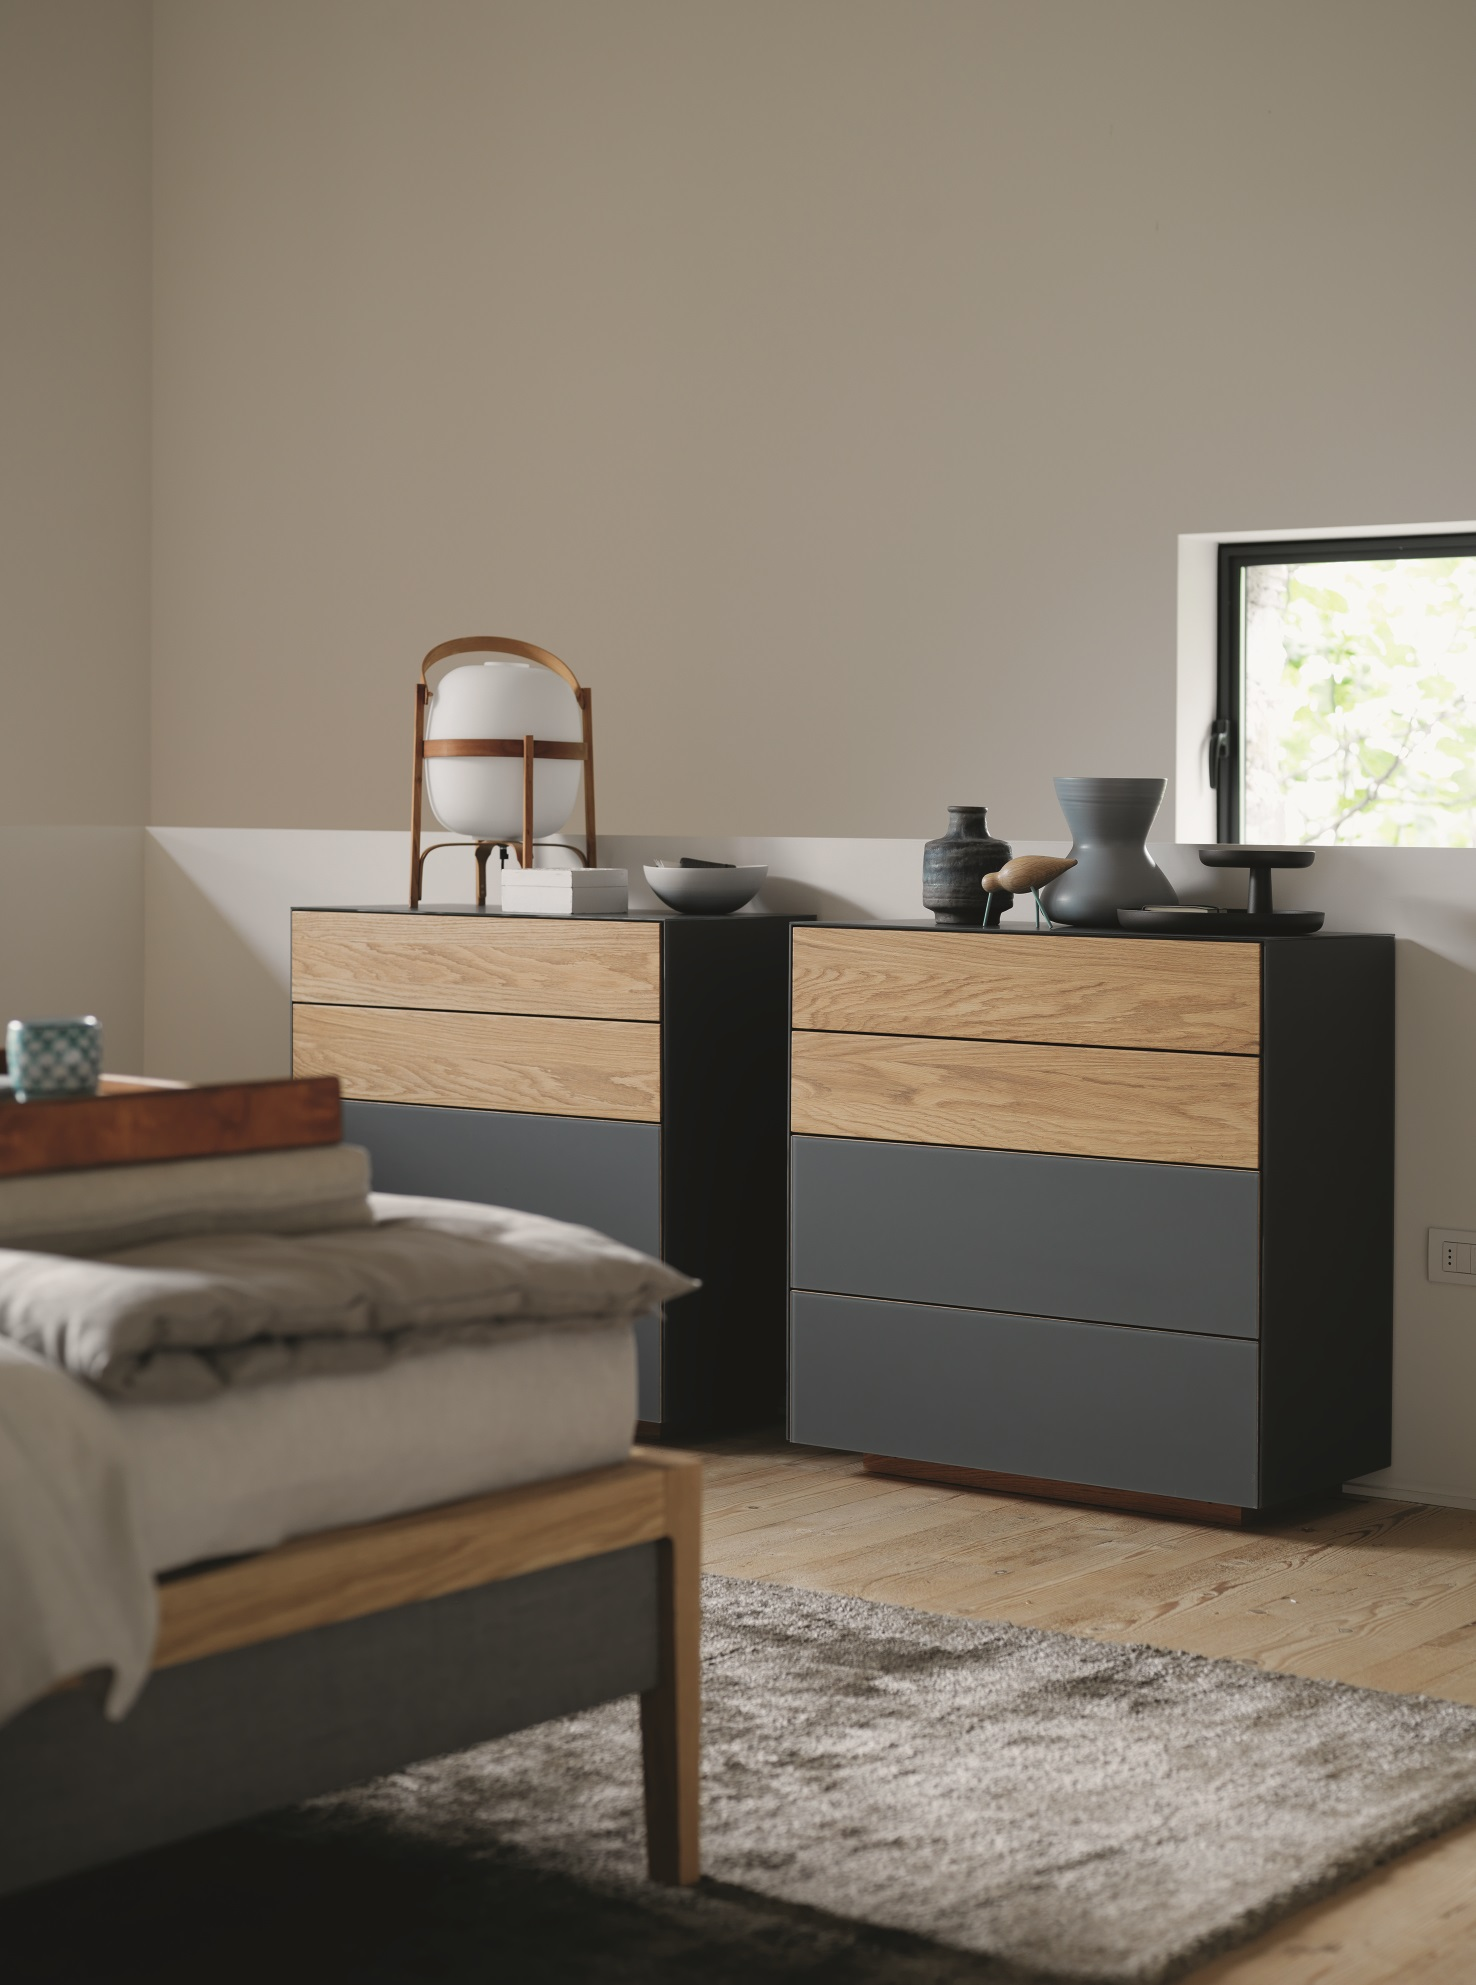 bett mylon biom bel bonn. Black Bedroom Furniture Sets. Home Design Ideas